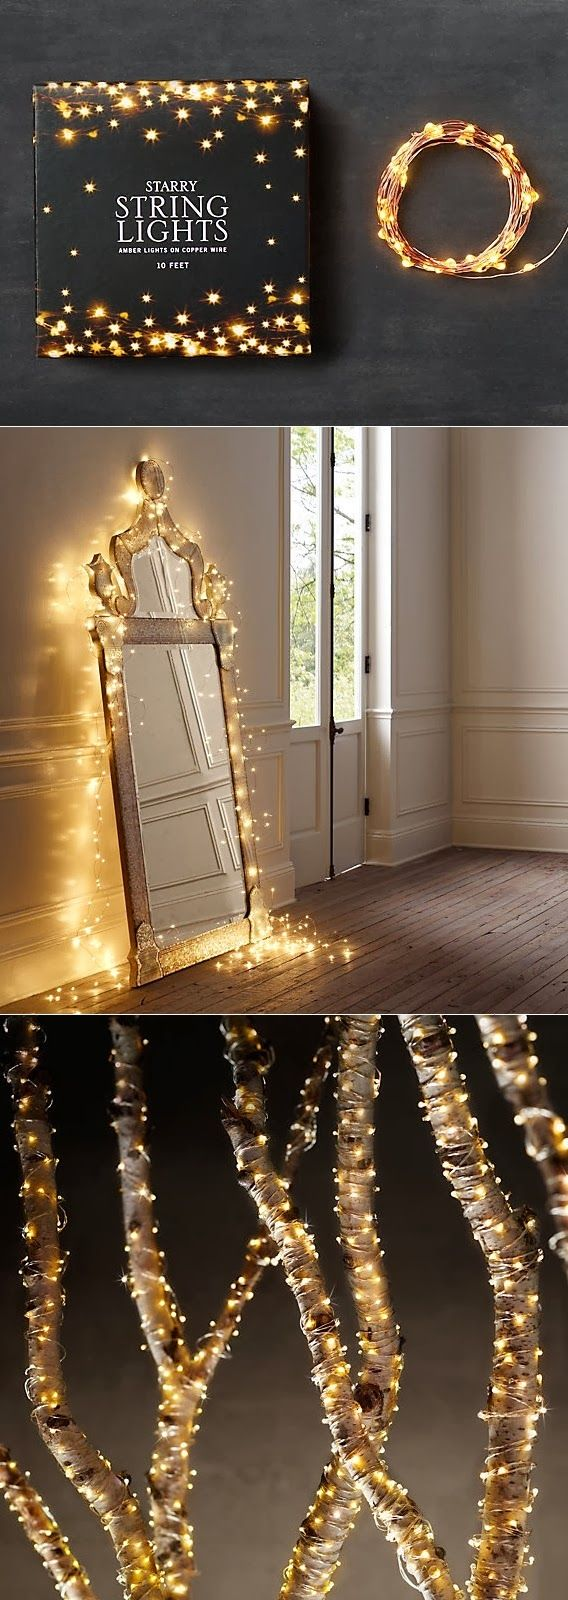 27 Incredible Christmas Lights Decorating Projects-homesthetics (18)